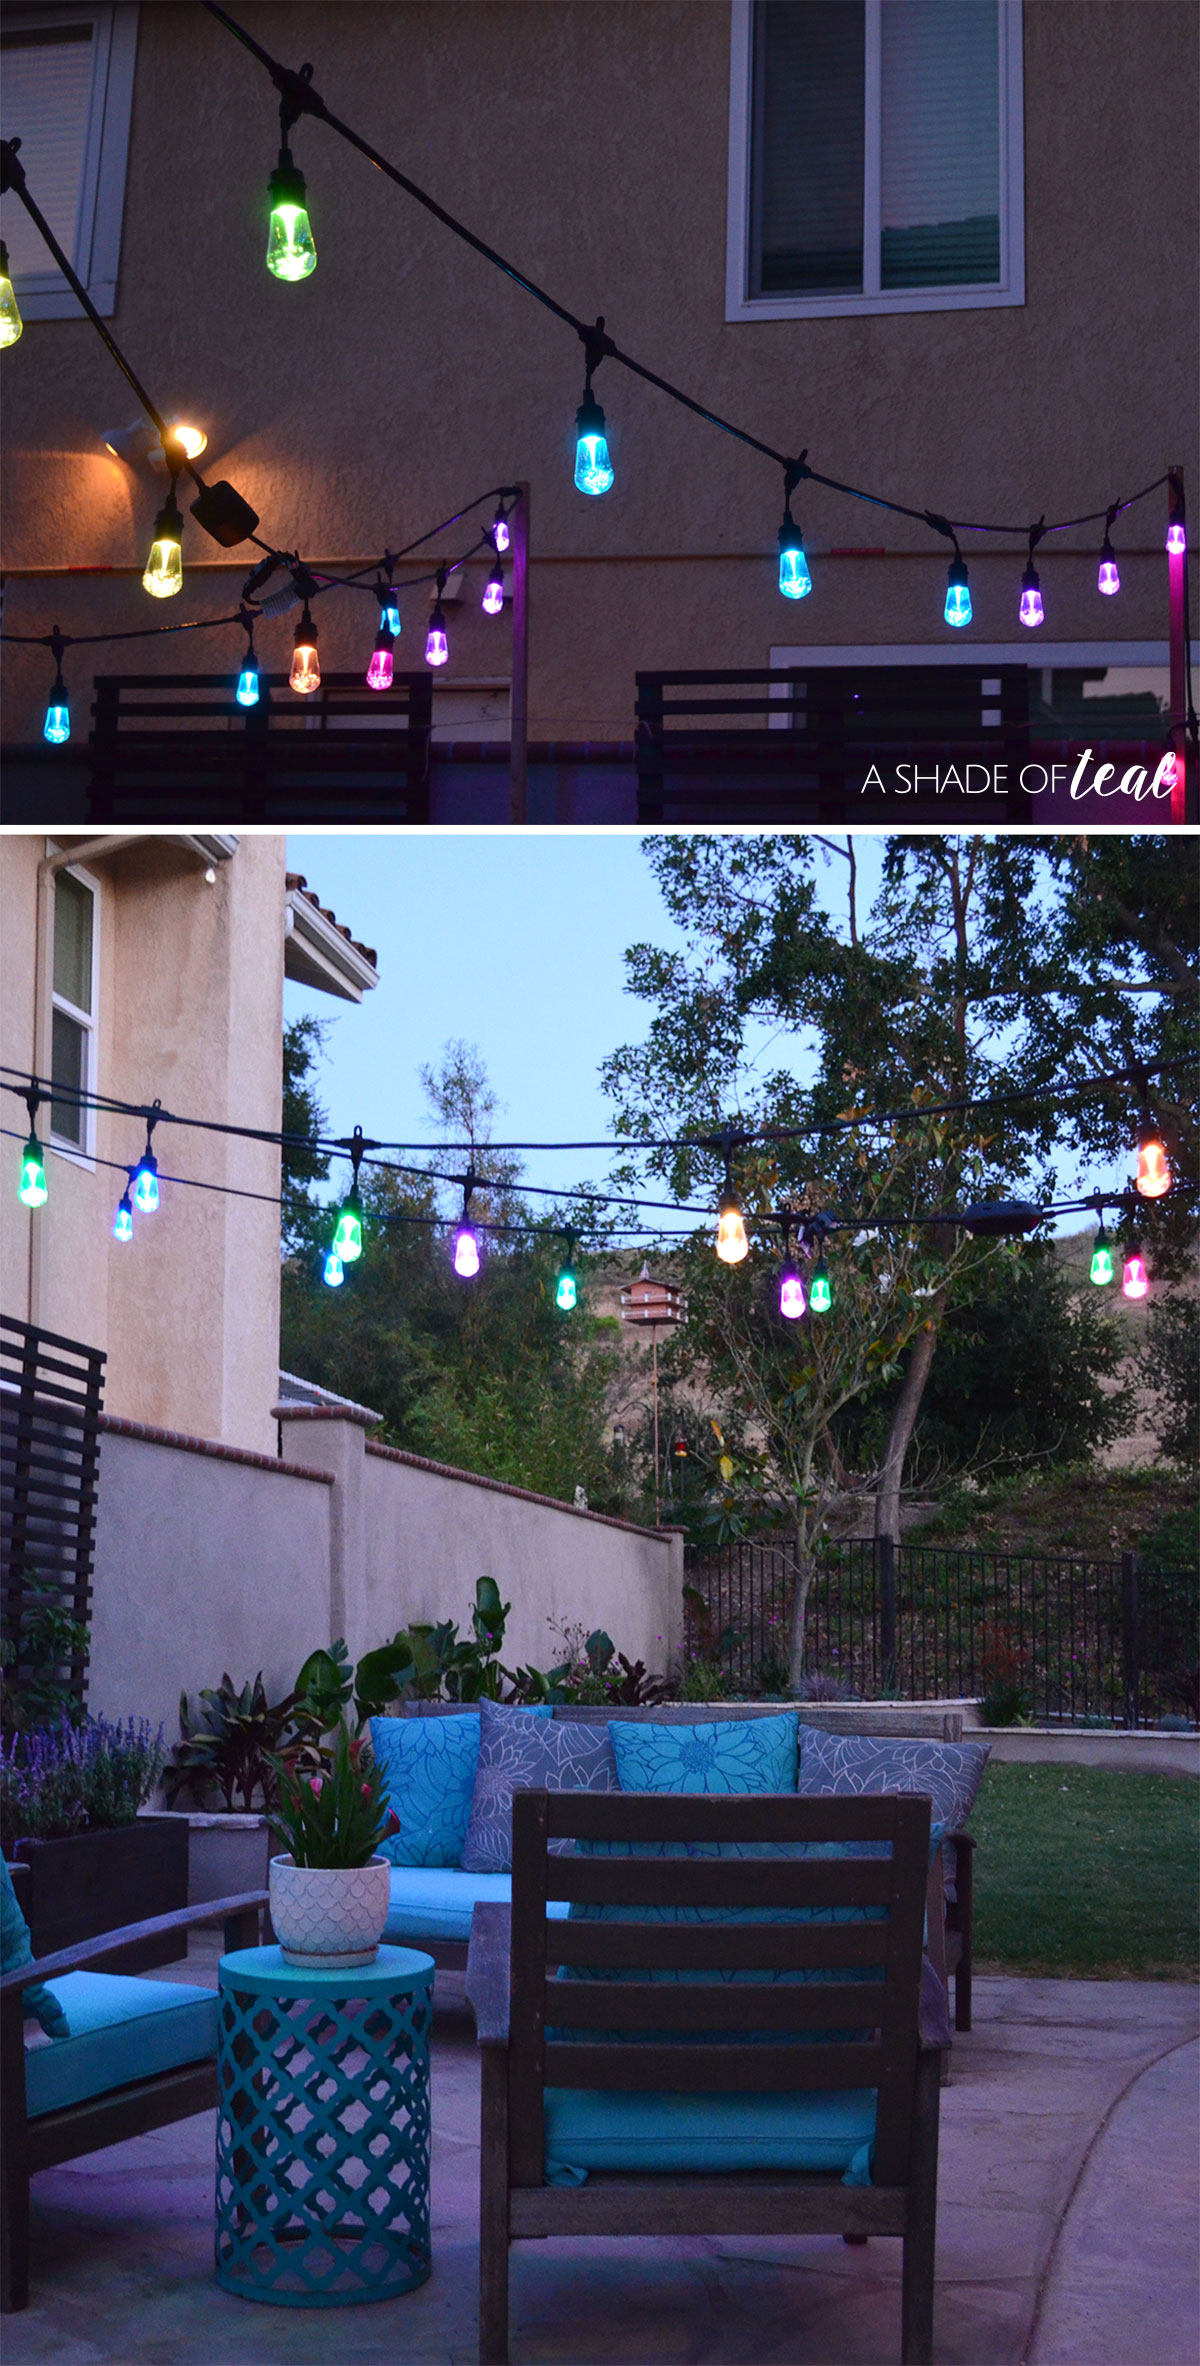 How To Easily Add Patio Lighting Anywhere! Patio Update Enbrighten Cafe %CC%81